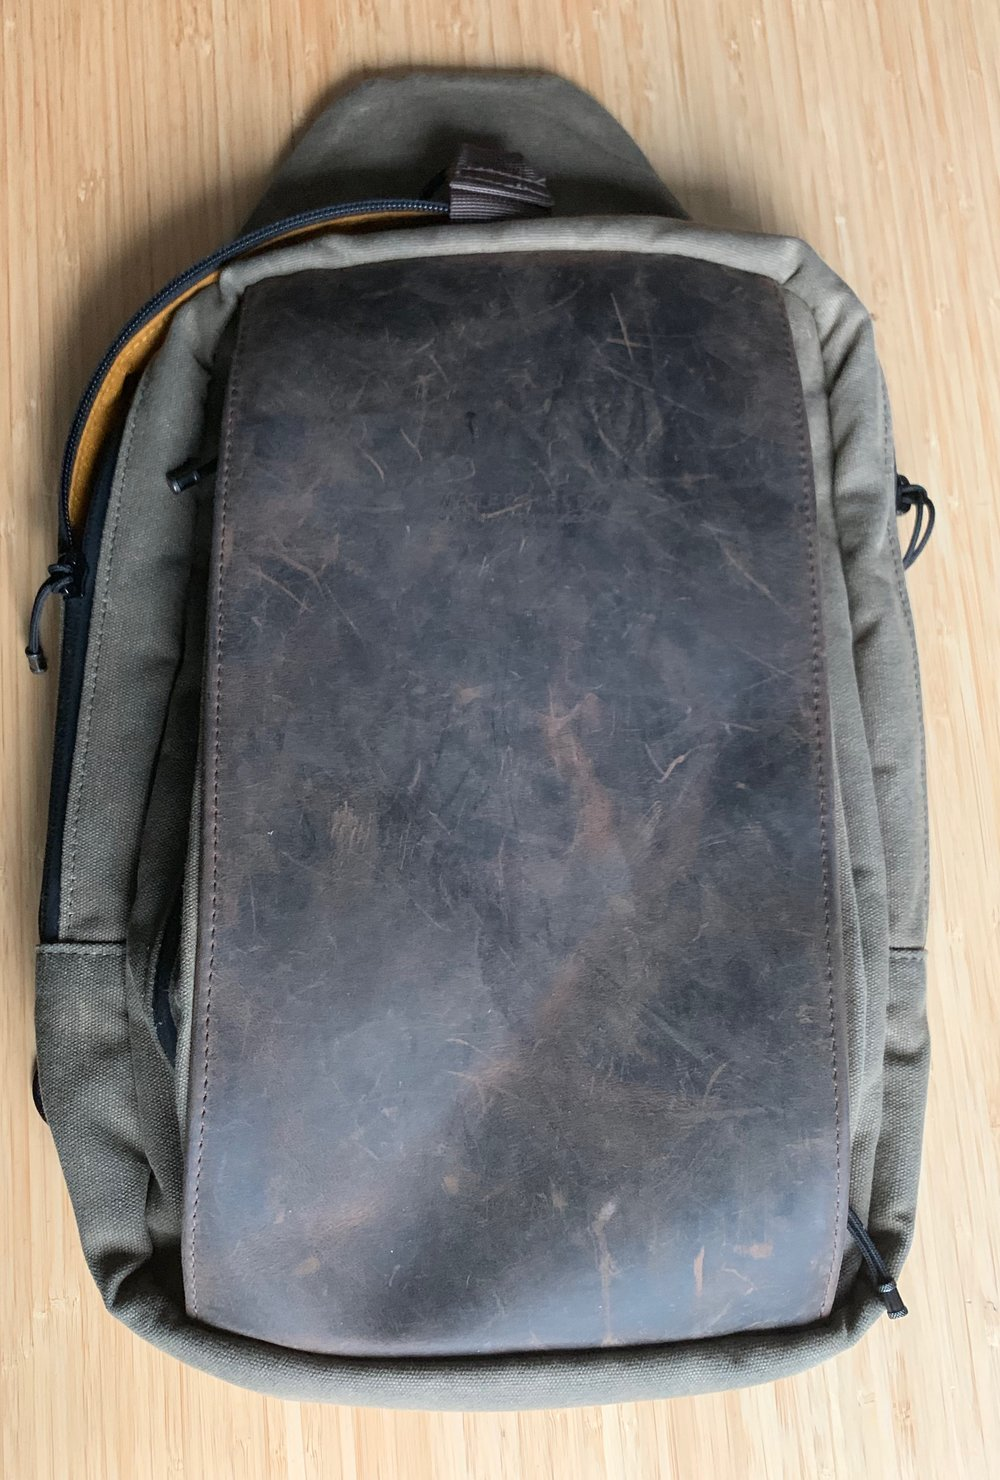 My well-loved Sutter Tech Sling. Click to enlarge.